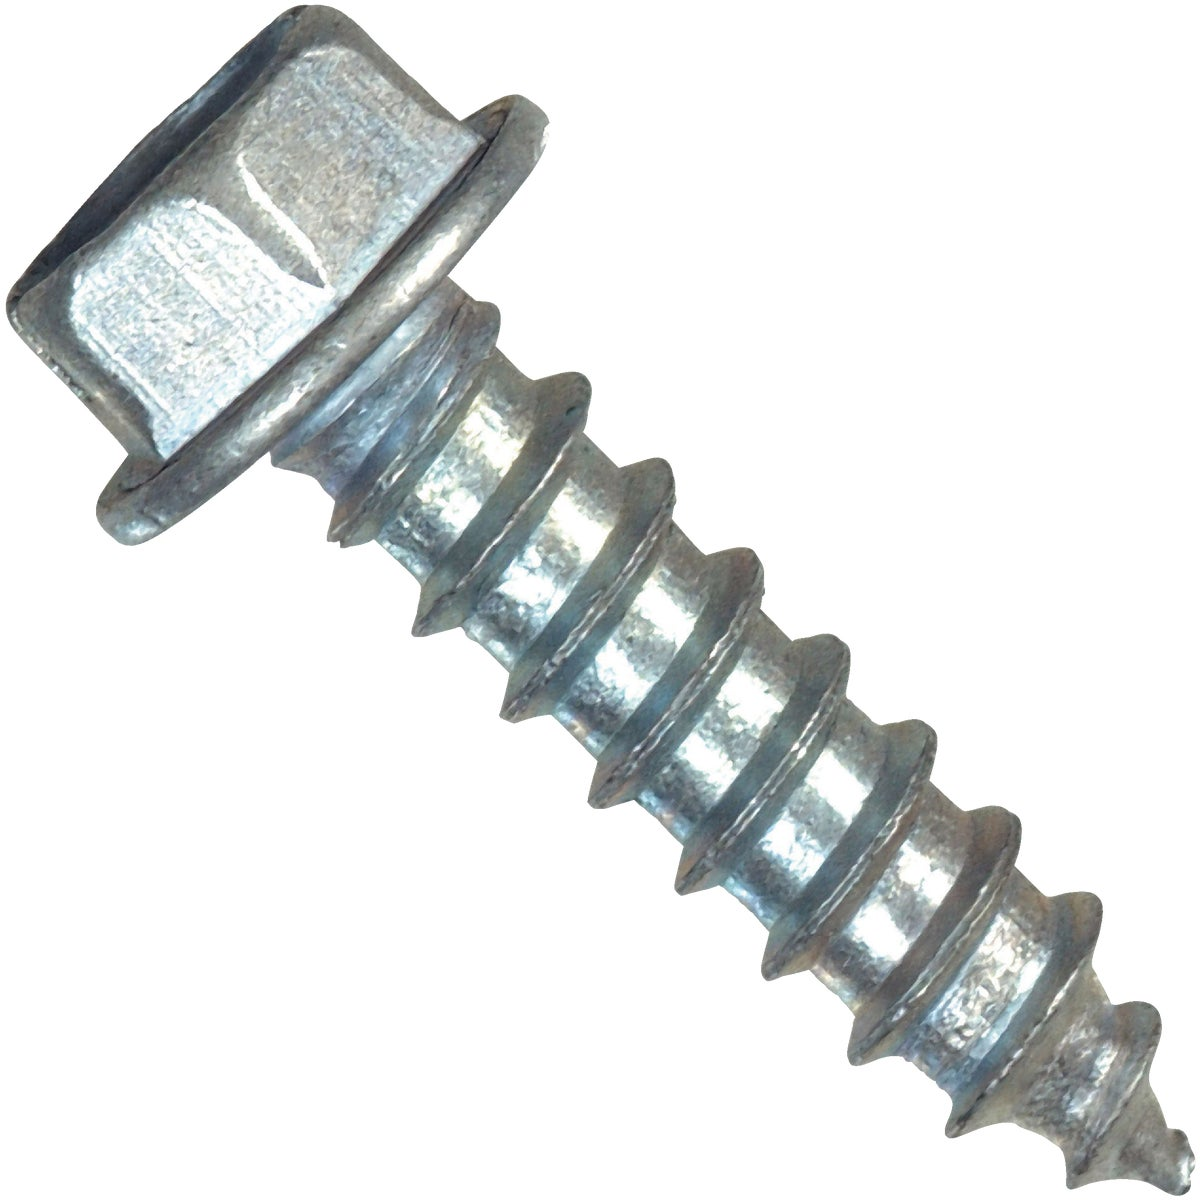 7X1/2 HWH SHT MTL SCREW - 70265 by Hillman Fastener